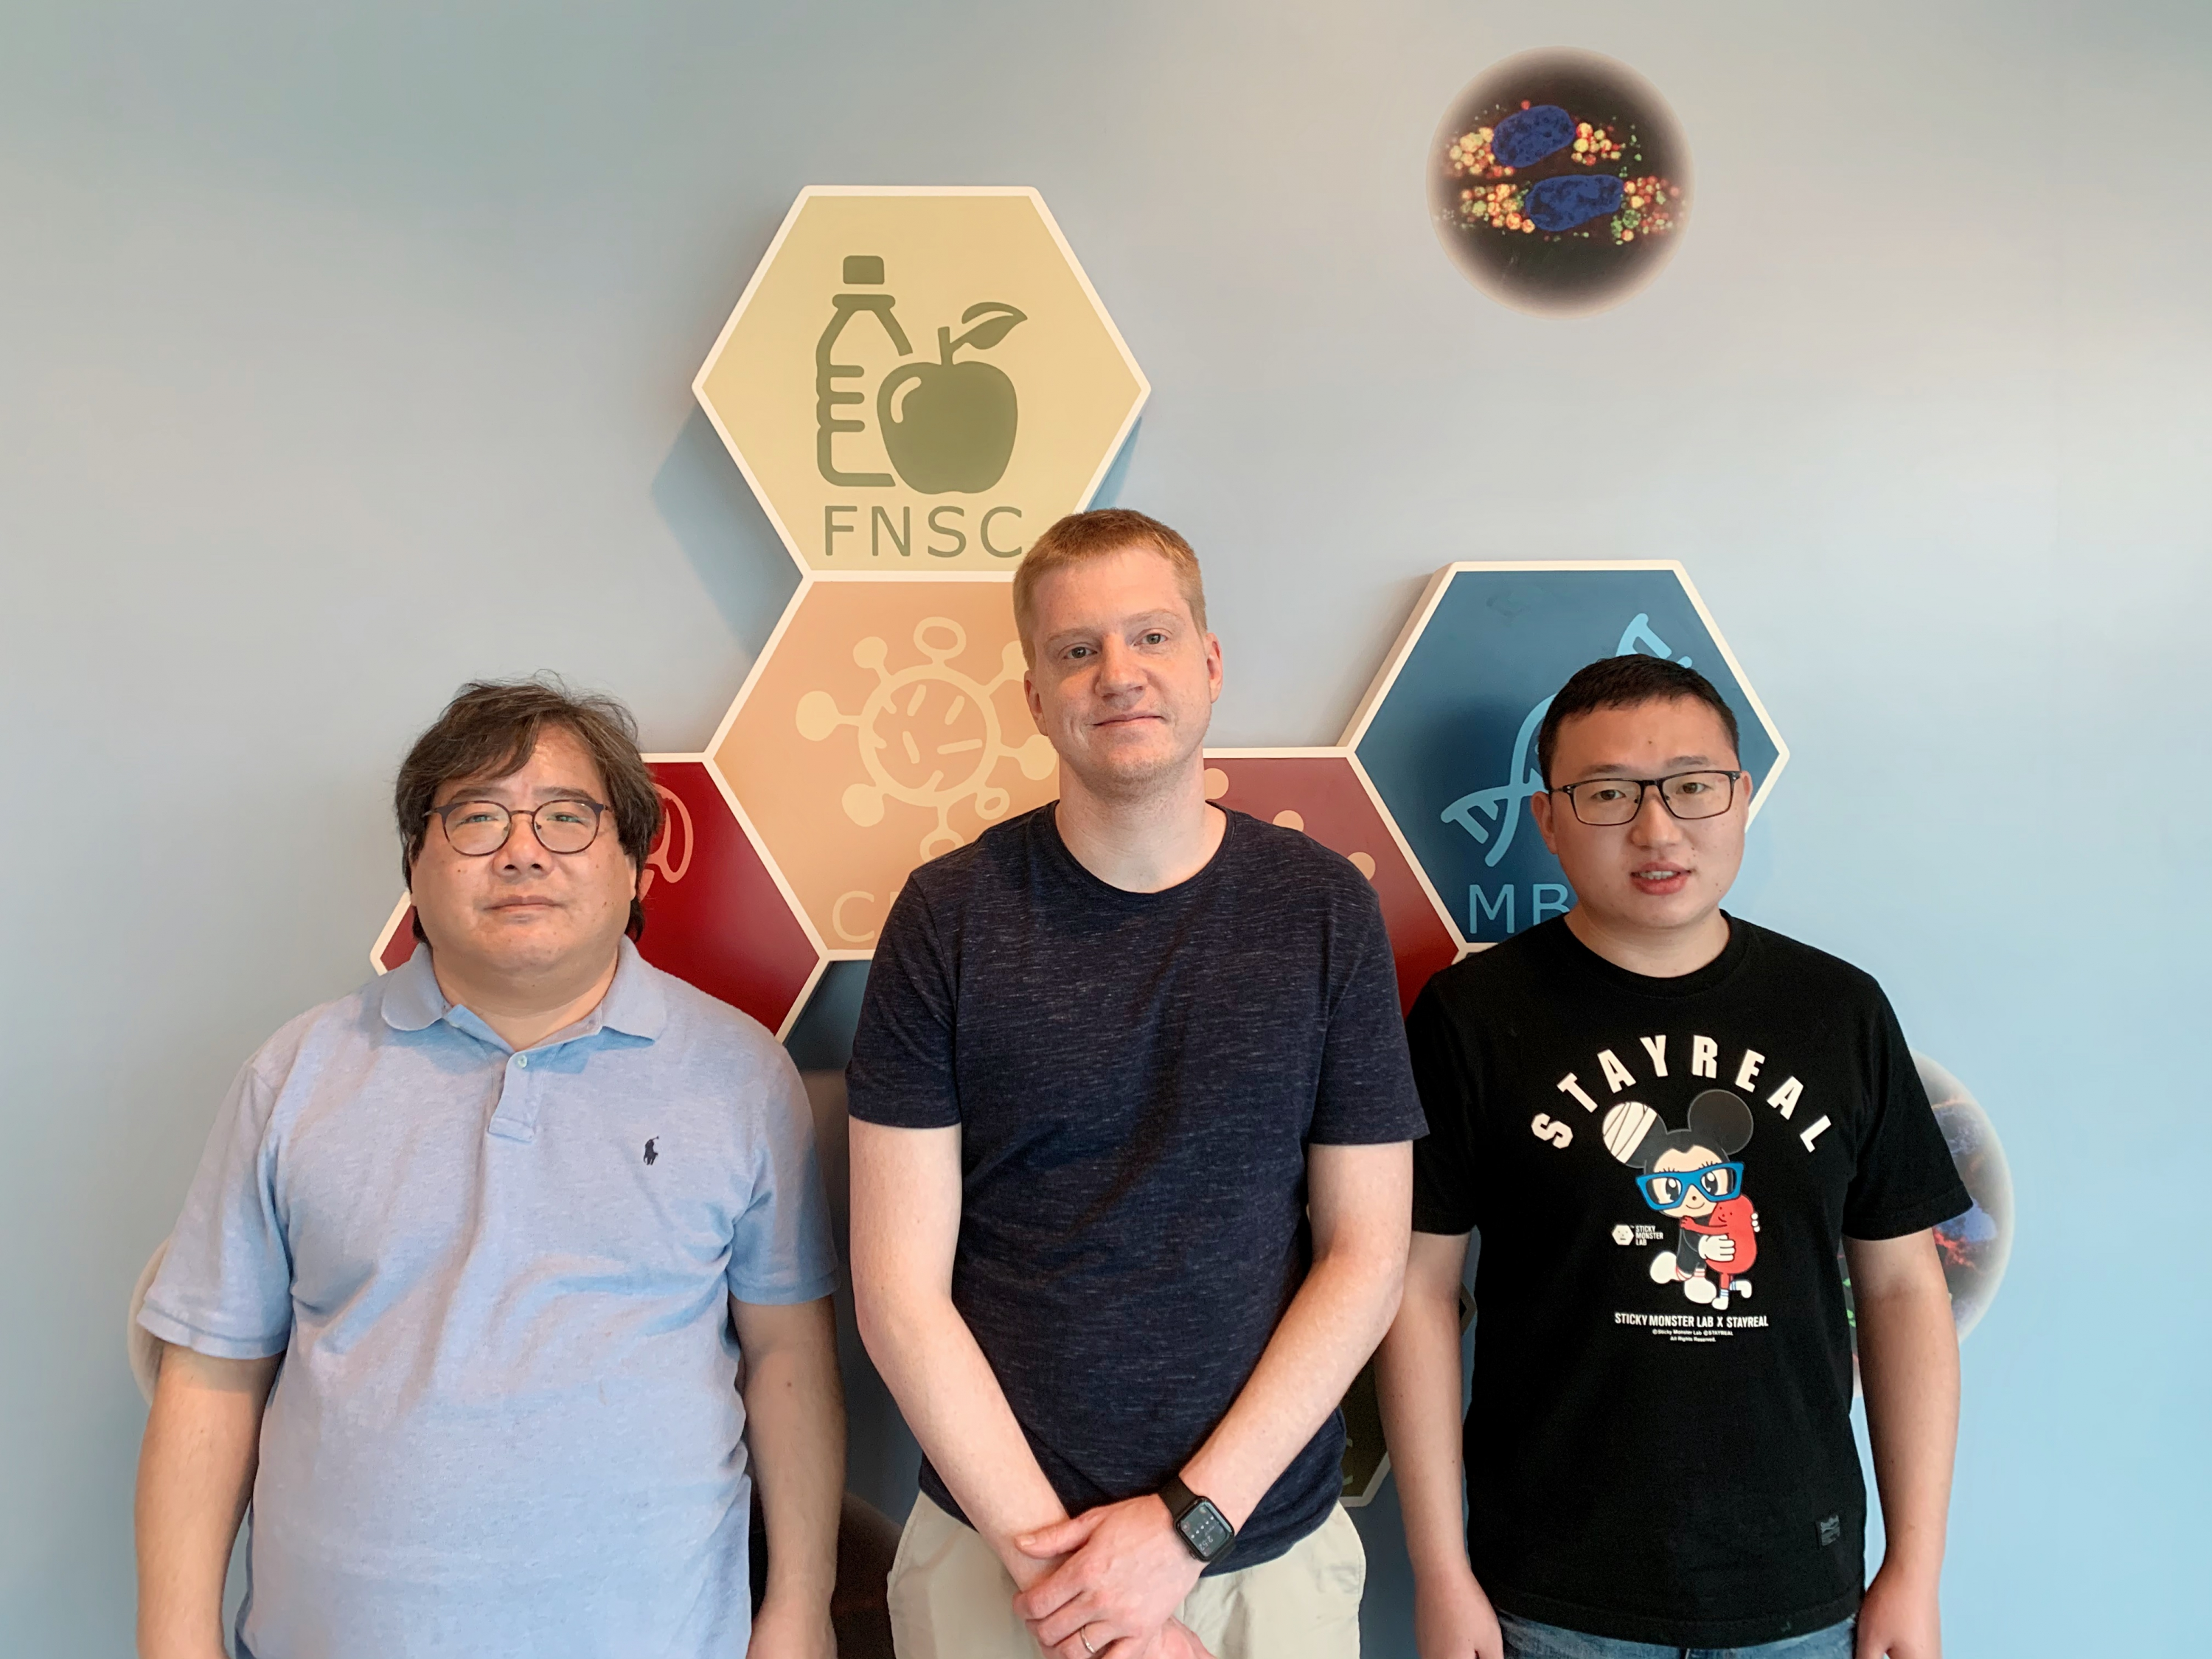 CUHK Research team develops a novel technology for generating biocatalysts. (From left to right: Prof. Michael Chan, Dr. Bradley Heater and Dr. Zaofeng Yang)